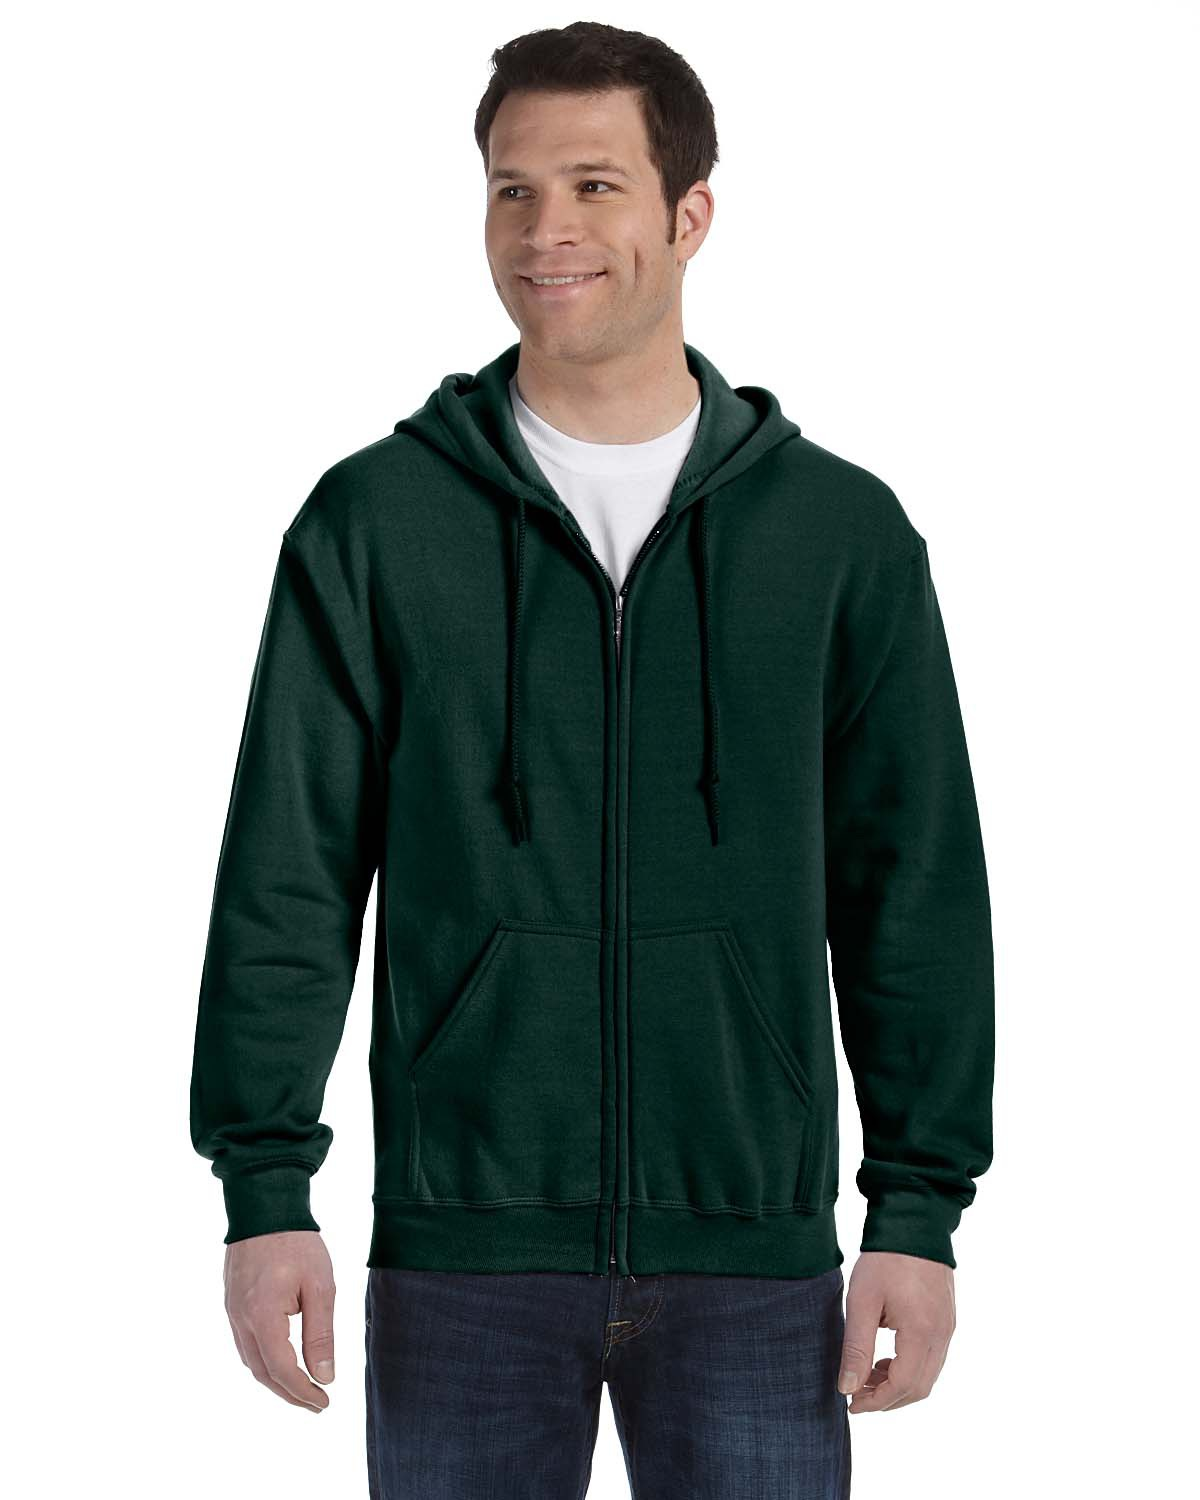 G186 FULL FRONT ZIPPERED HOODIE